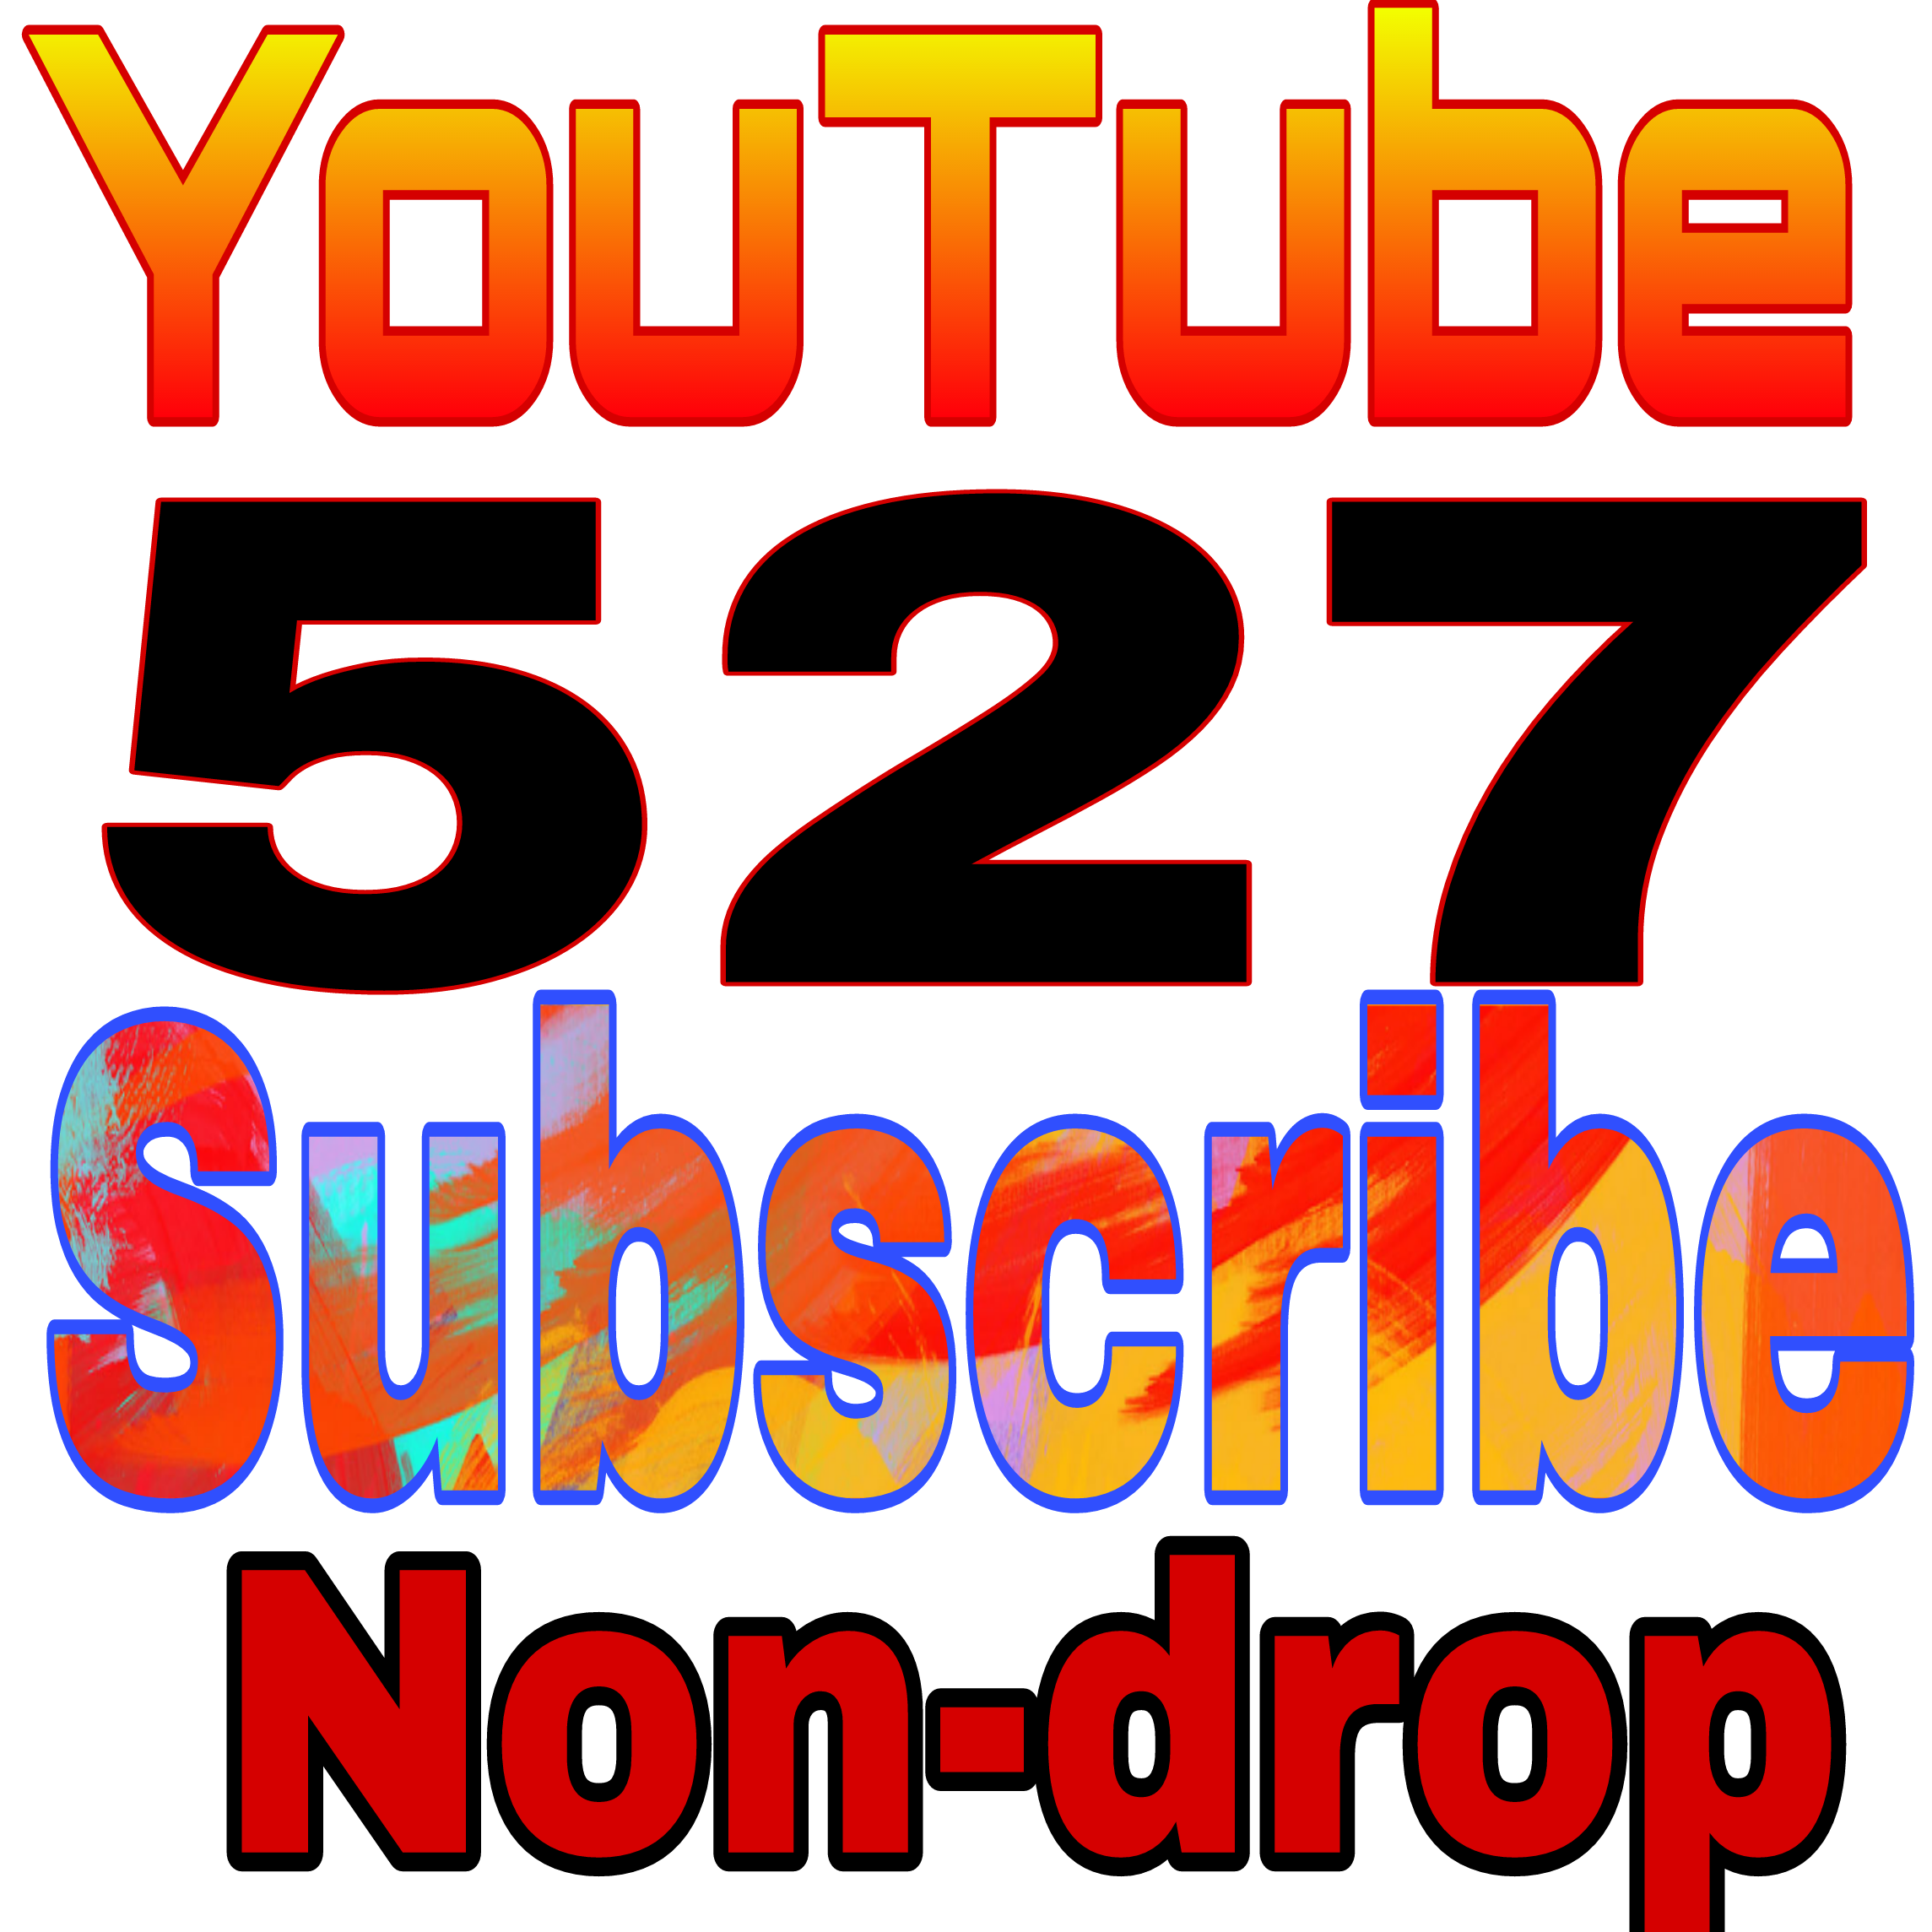 Wonderful offer 500+ YT channel subs non drop refill guaranteed in 12-96 hours delivery